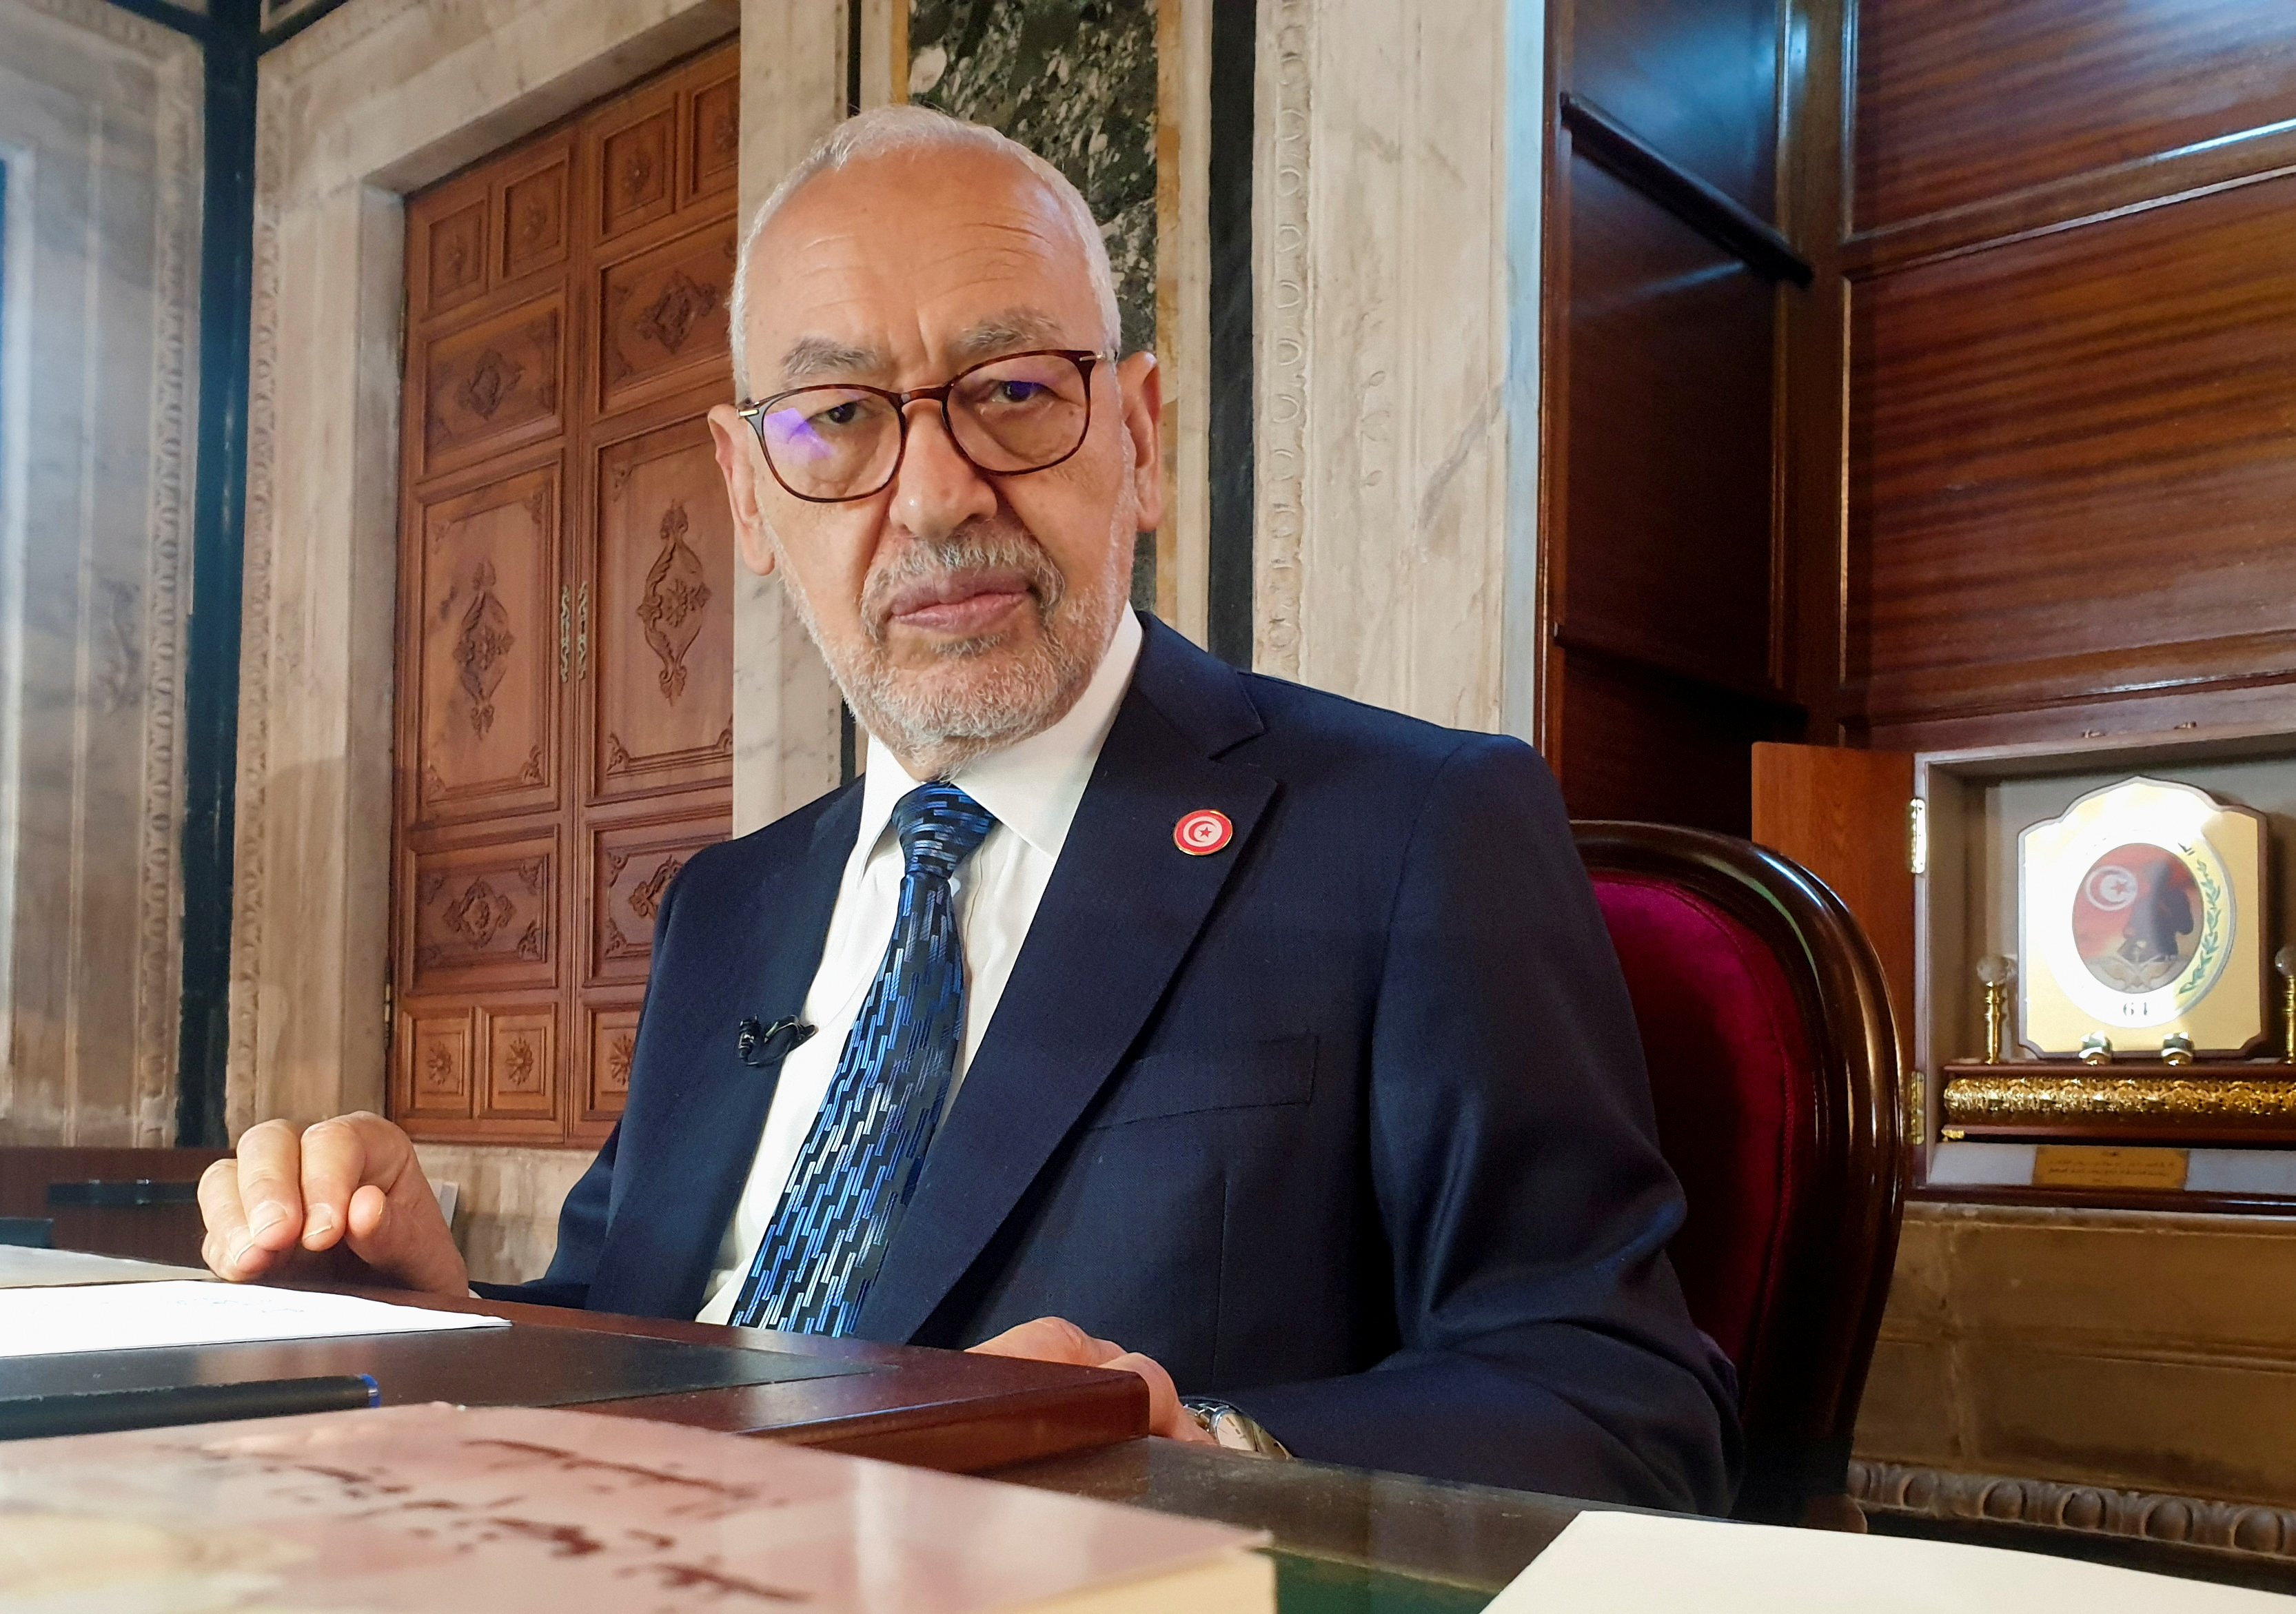 Rached Ghannouchi, head of the moderate Islamist Ennahda, poses during an interview with Reuters in his office, in Tunis, Tunisia, March 9, 2021.  REUTERS/Jihed Abidellaoui/File Photo